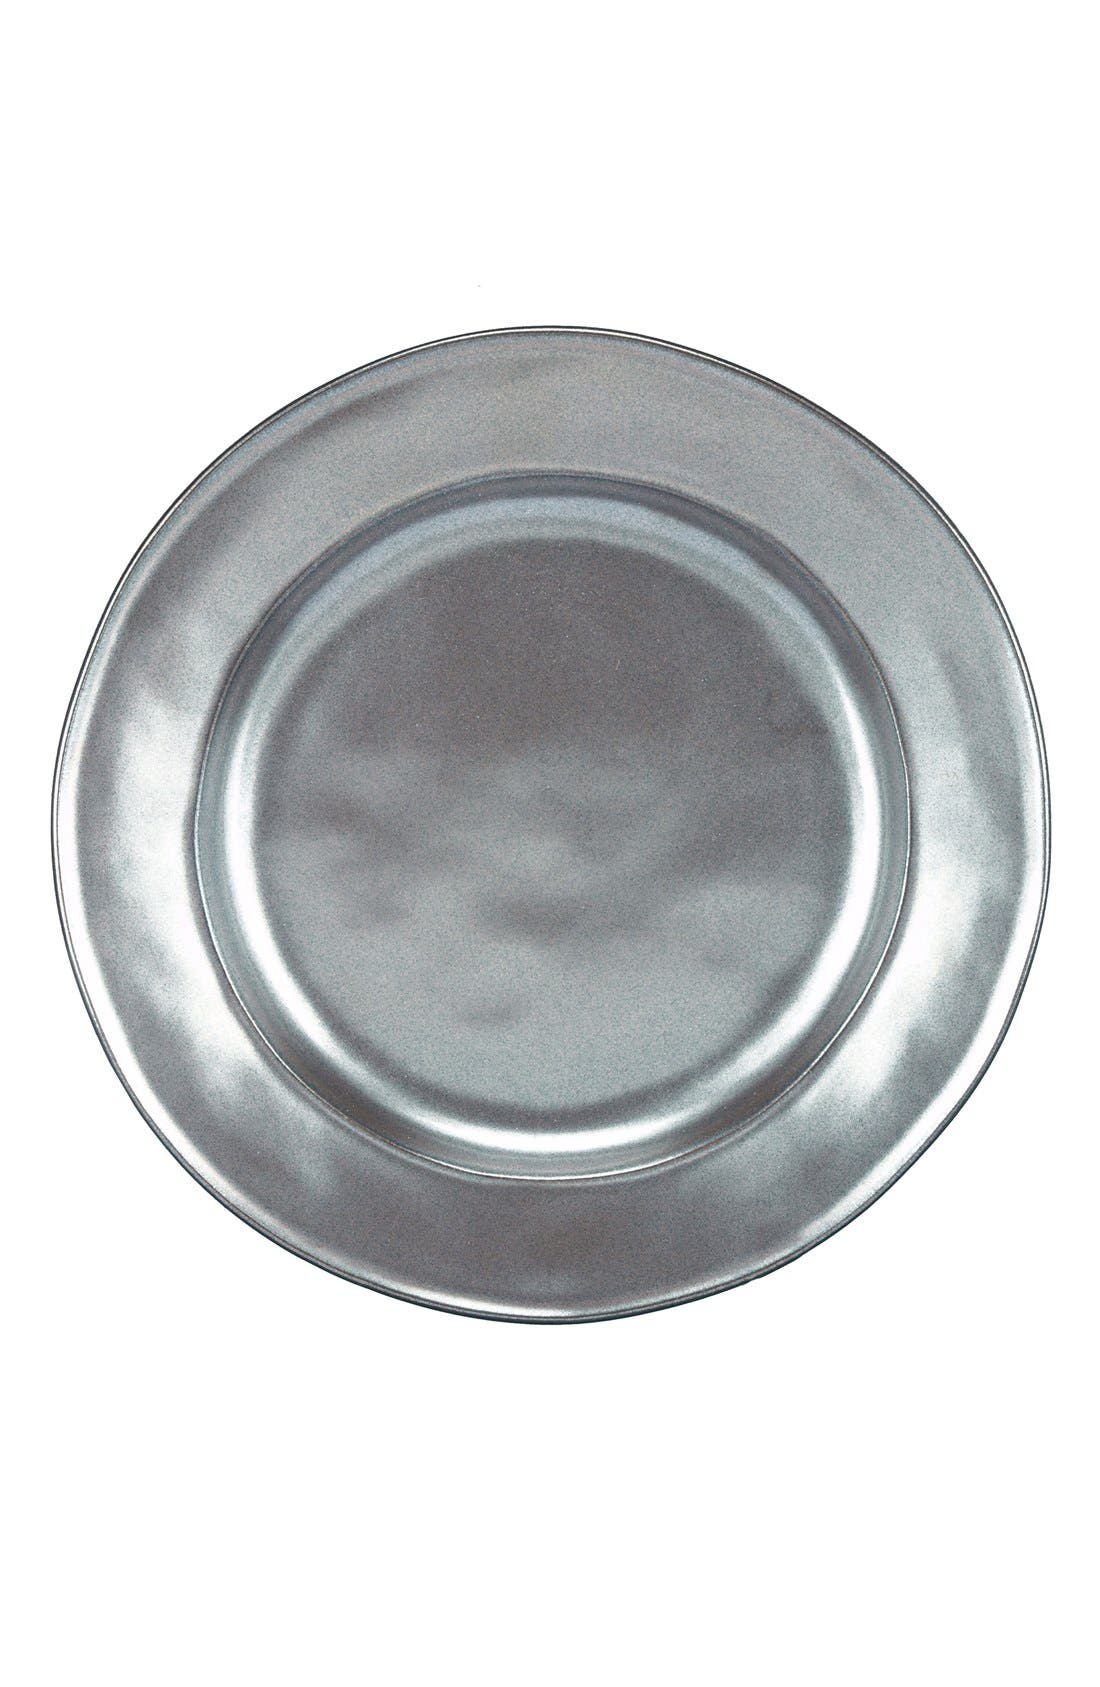 Juliska 'Pewter' Ceramic Salad Plate